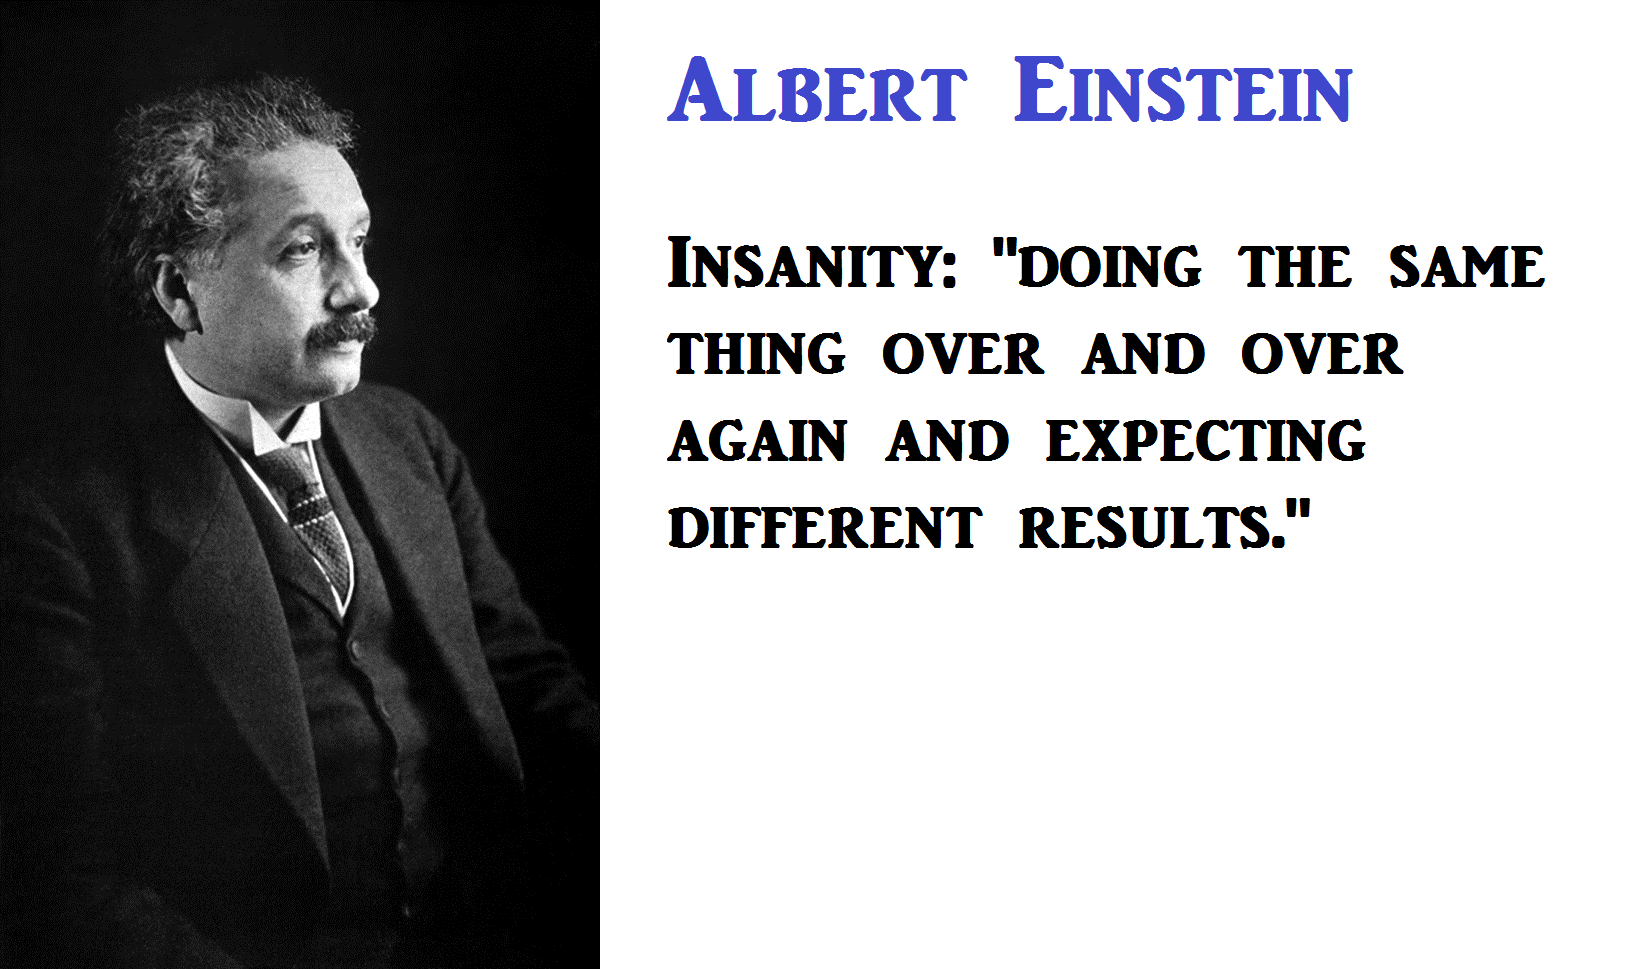 1-p-albert_einsteininsanityquote